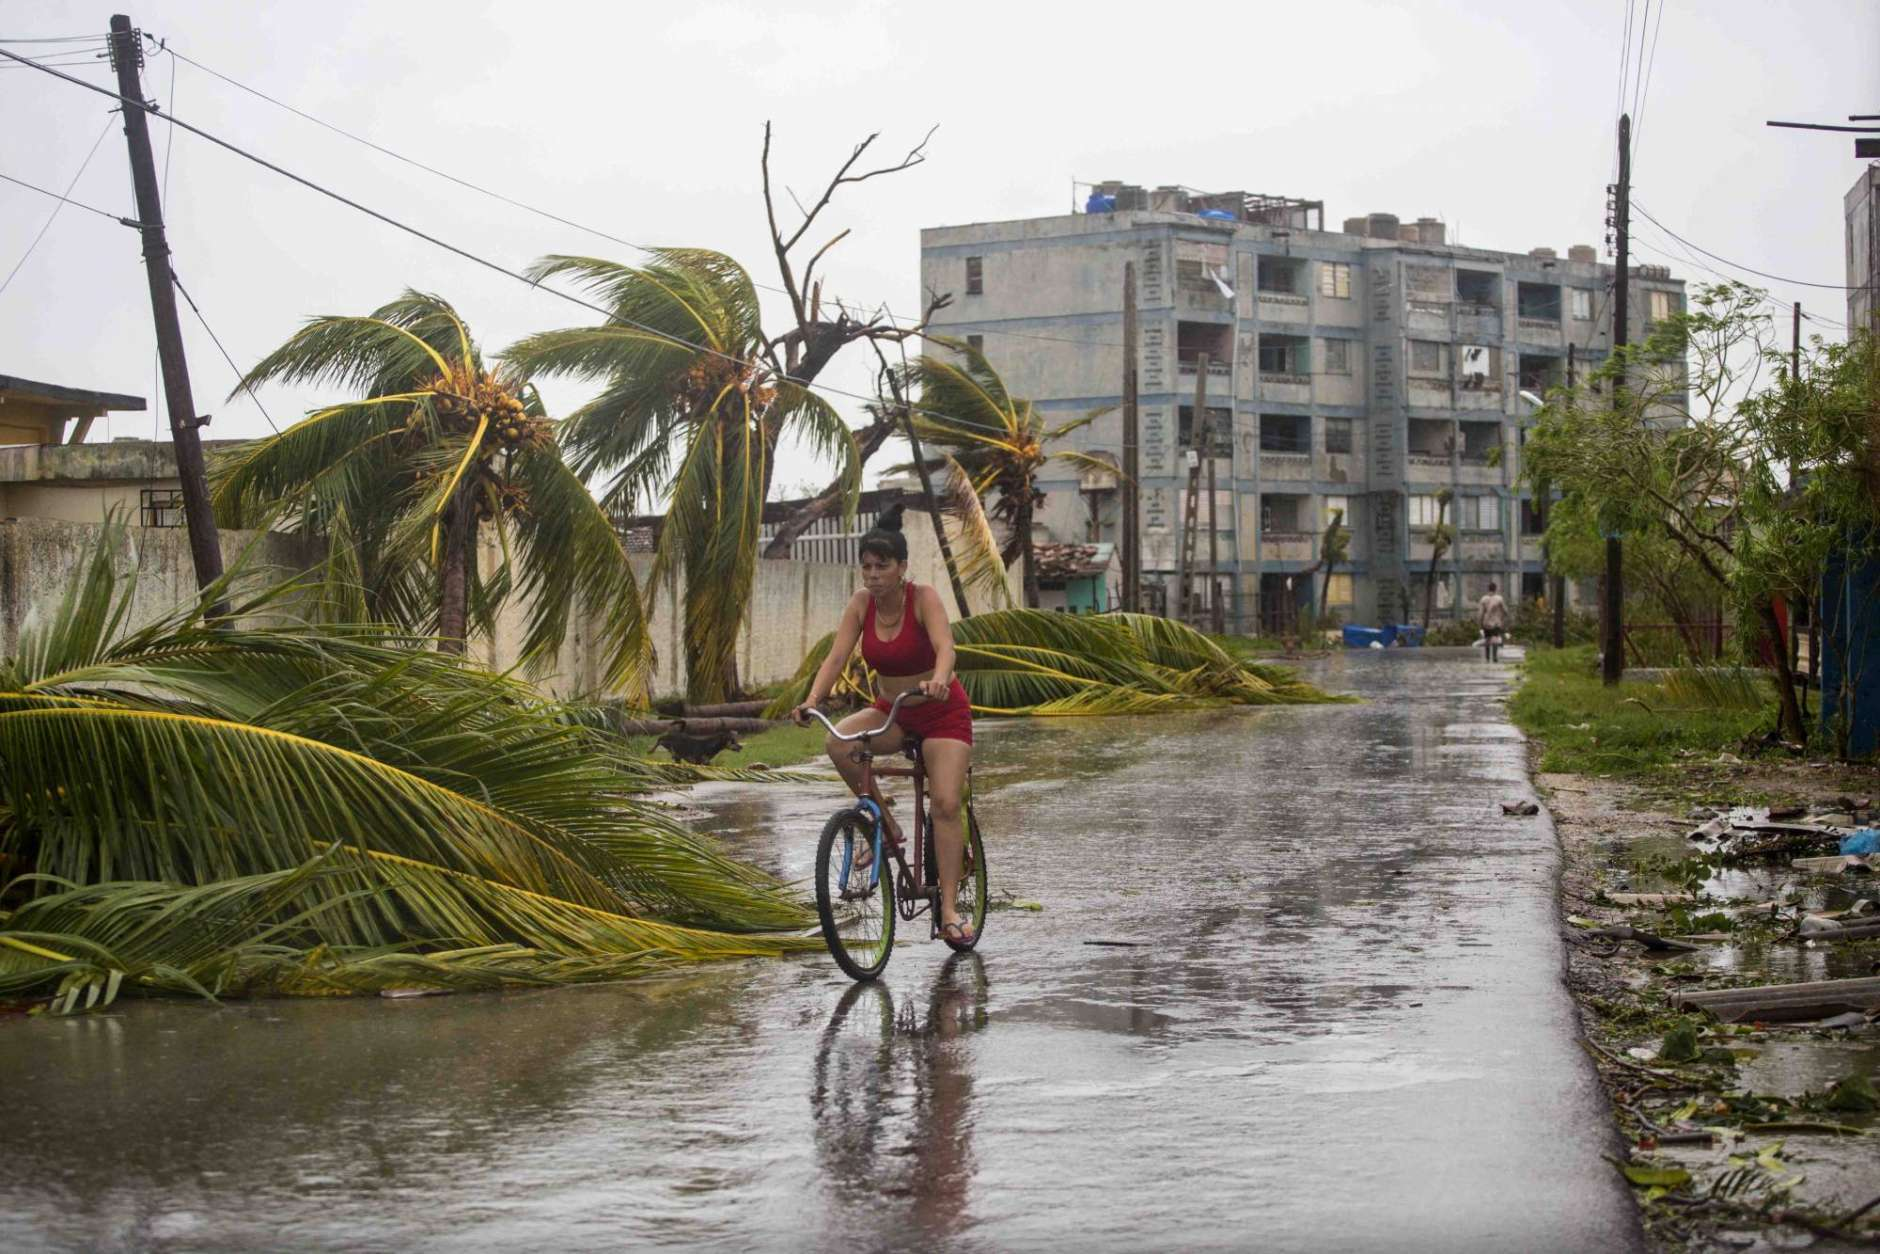 A woman rides a bike past palm trees felled by Hurricane Irma, in Caibarien, Cuba, Saturday, Sept. 9, 2017. There were no reports of deaths or injuries after heavy rain and winds from Irma lashed northeastern Cuba. Seawater surged three blocks inland in Caibarien. (AP Photo/Desmond Boylan)